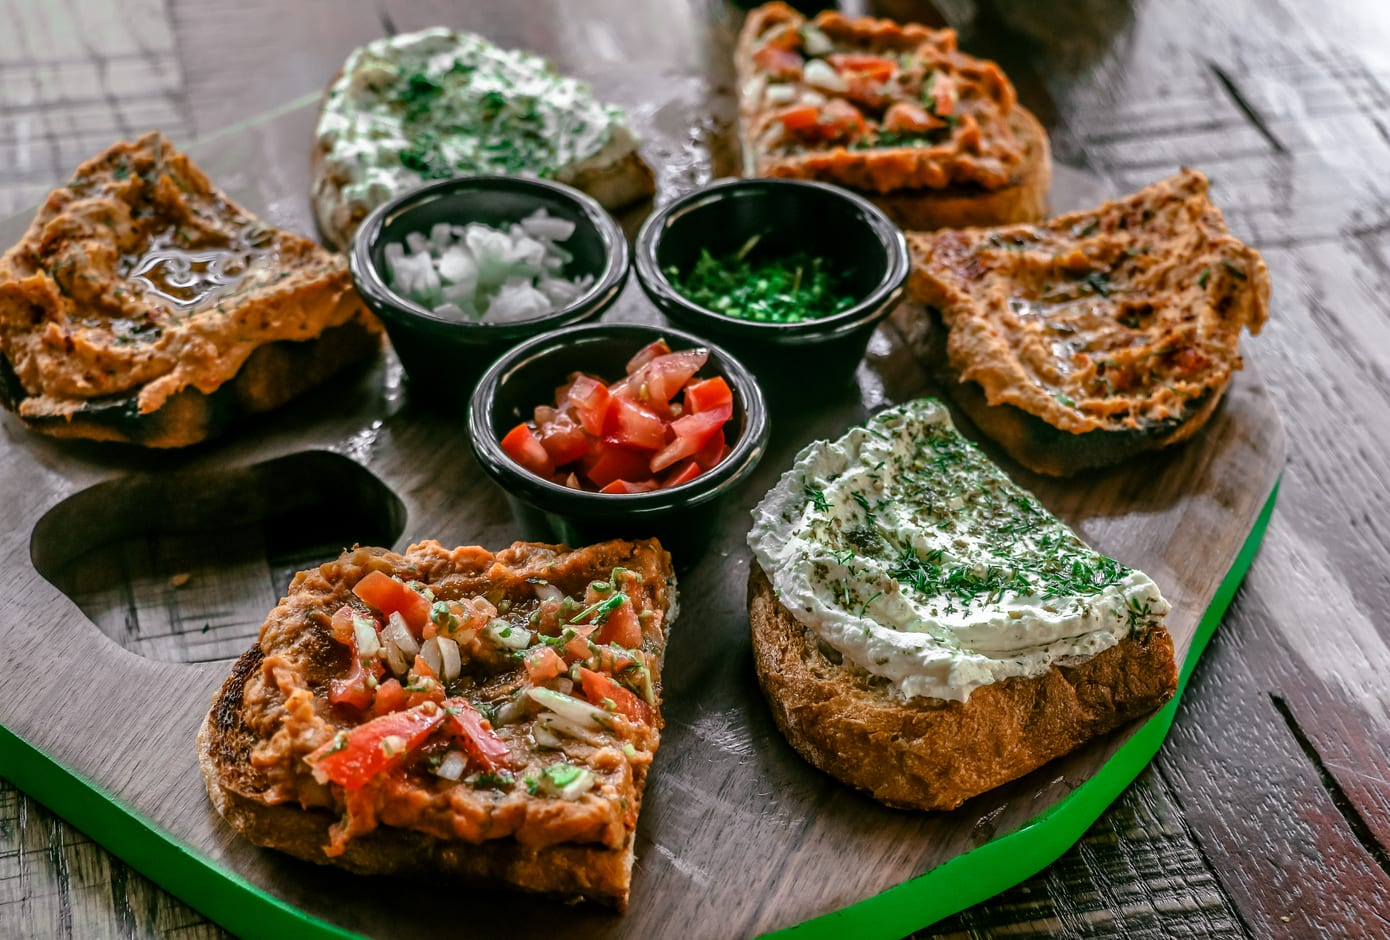 Variety of Middle Eastern  sandwiches with spreads.